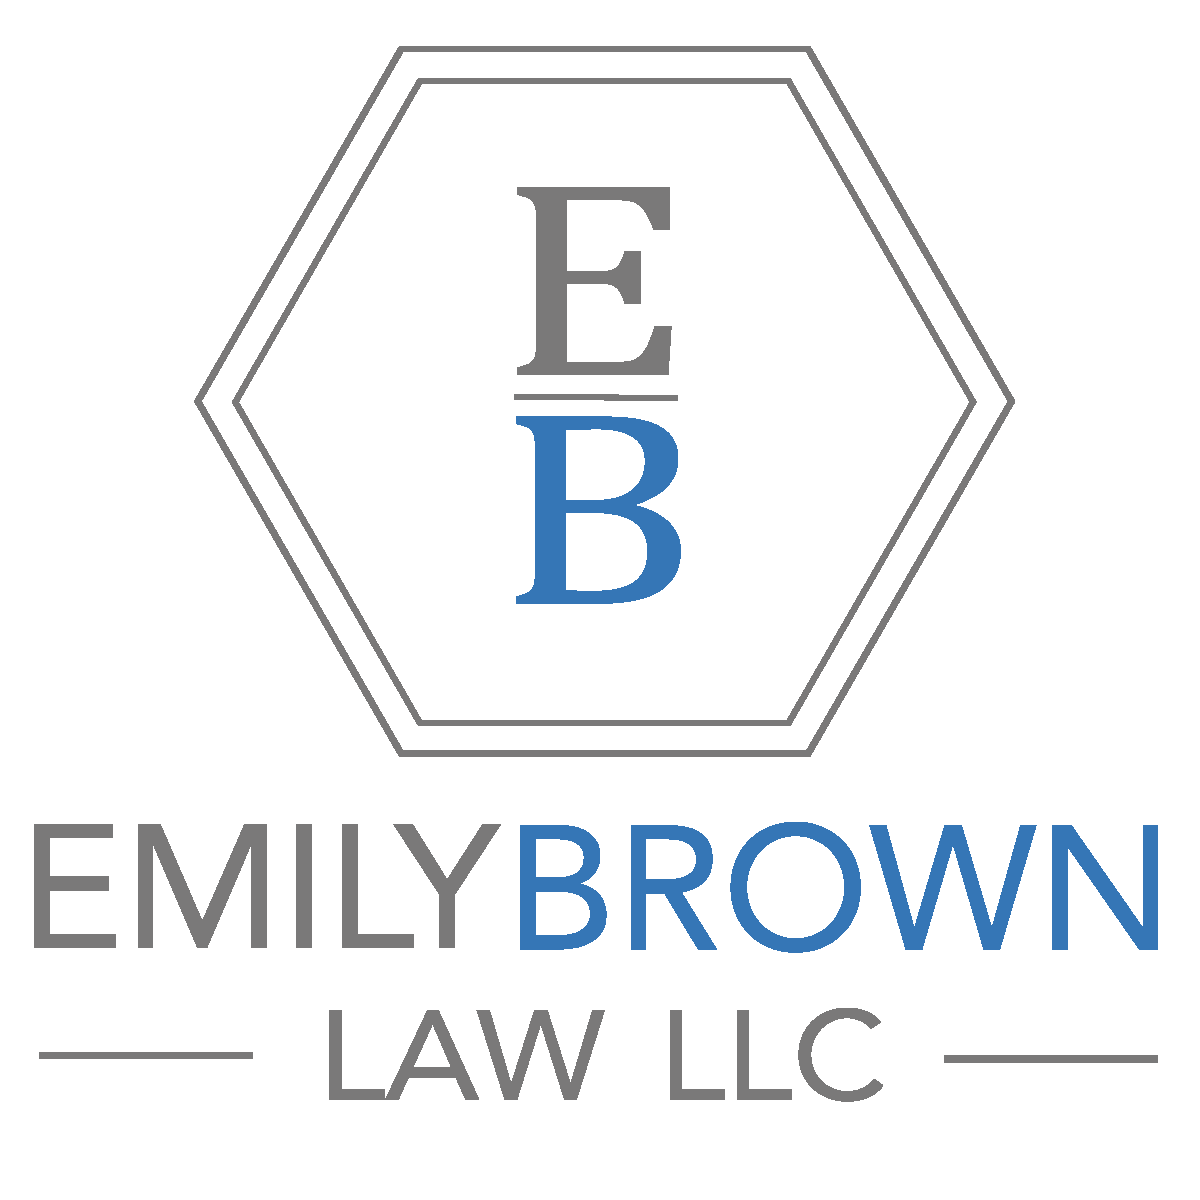 Emily Brown Law LLC